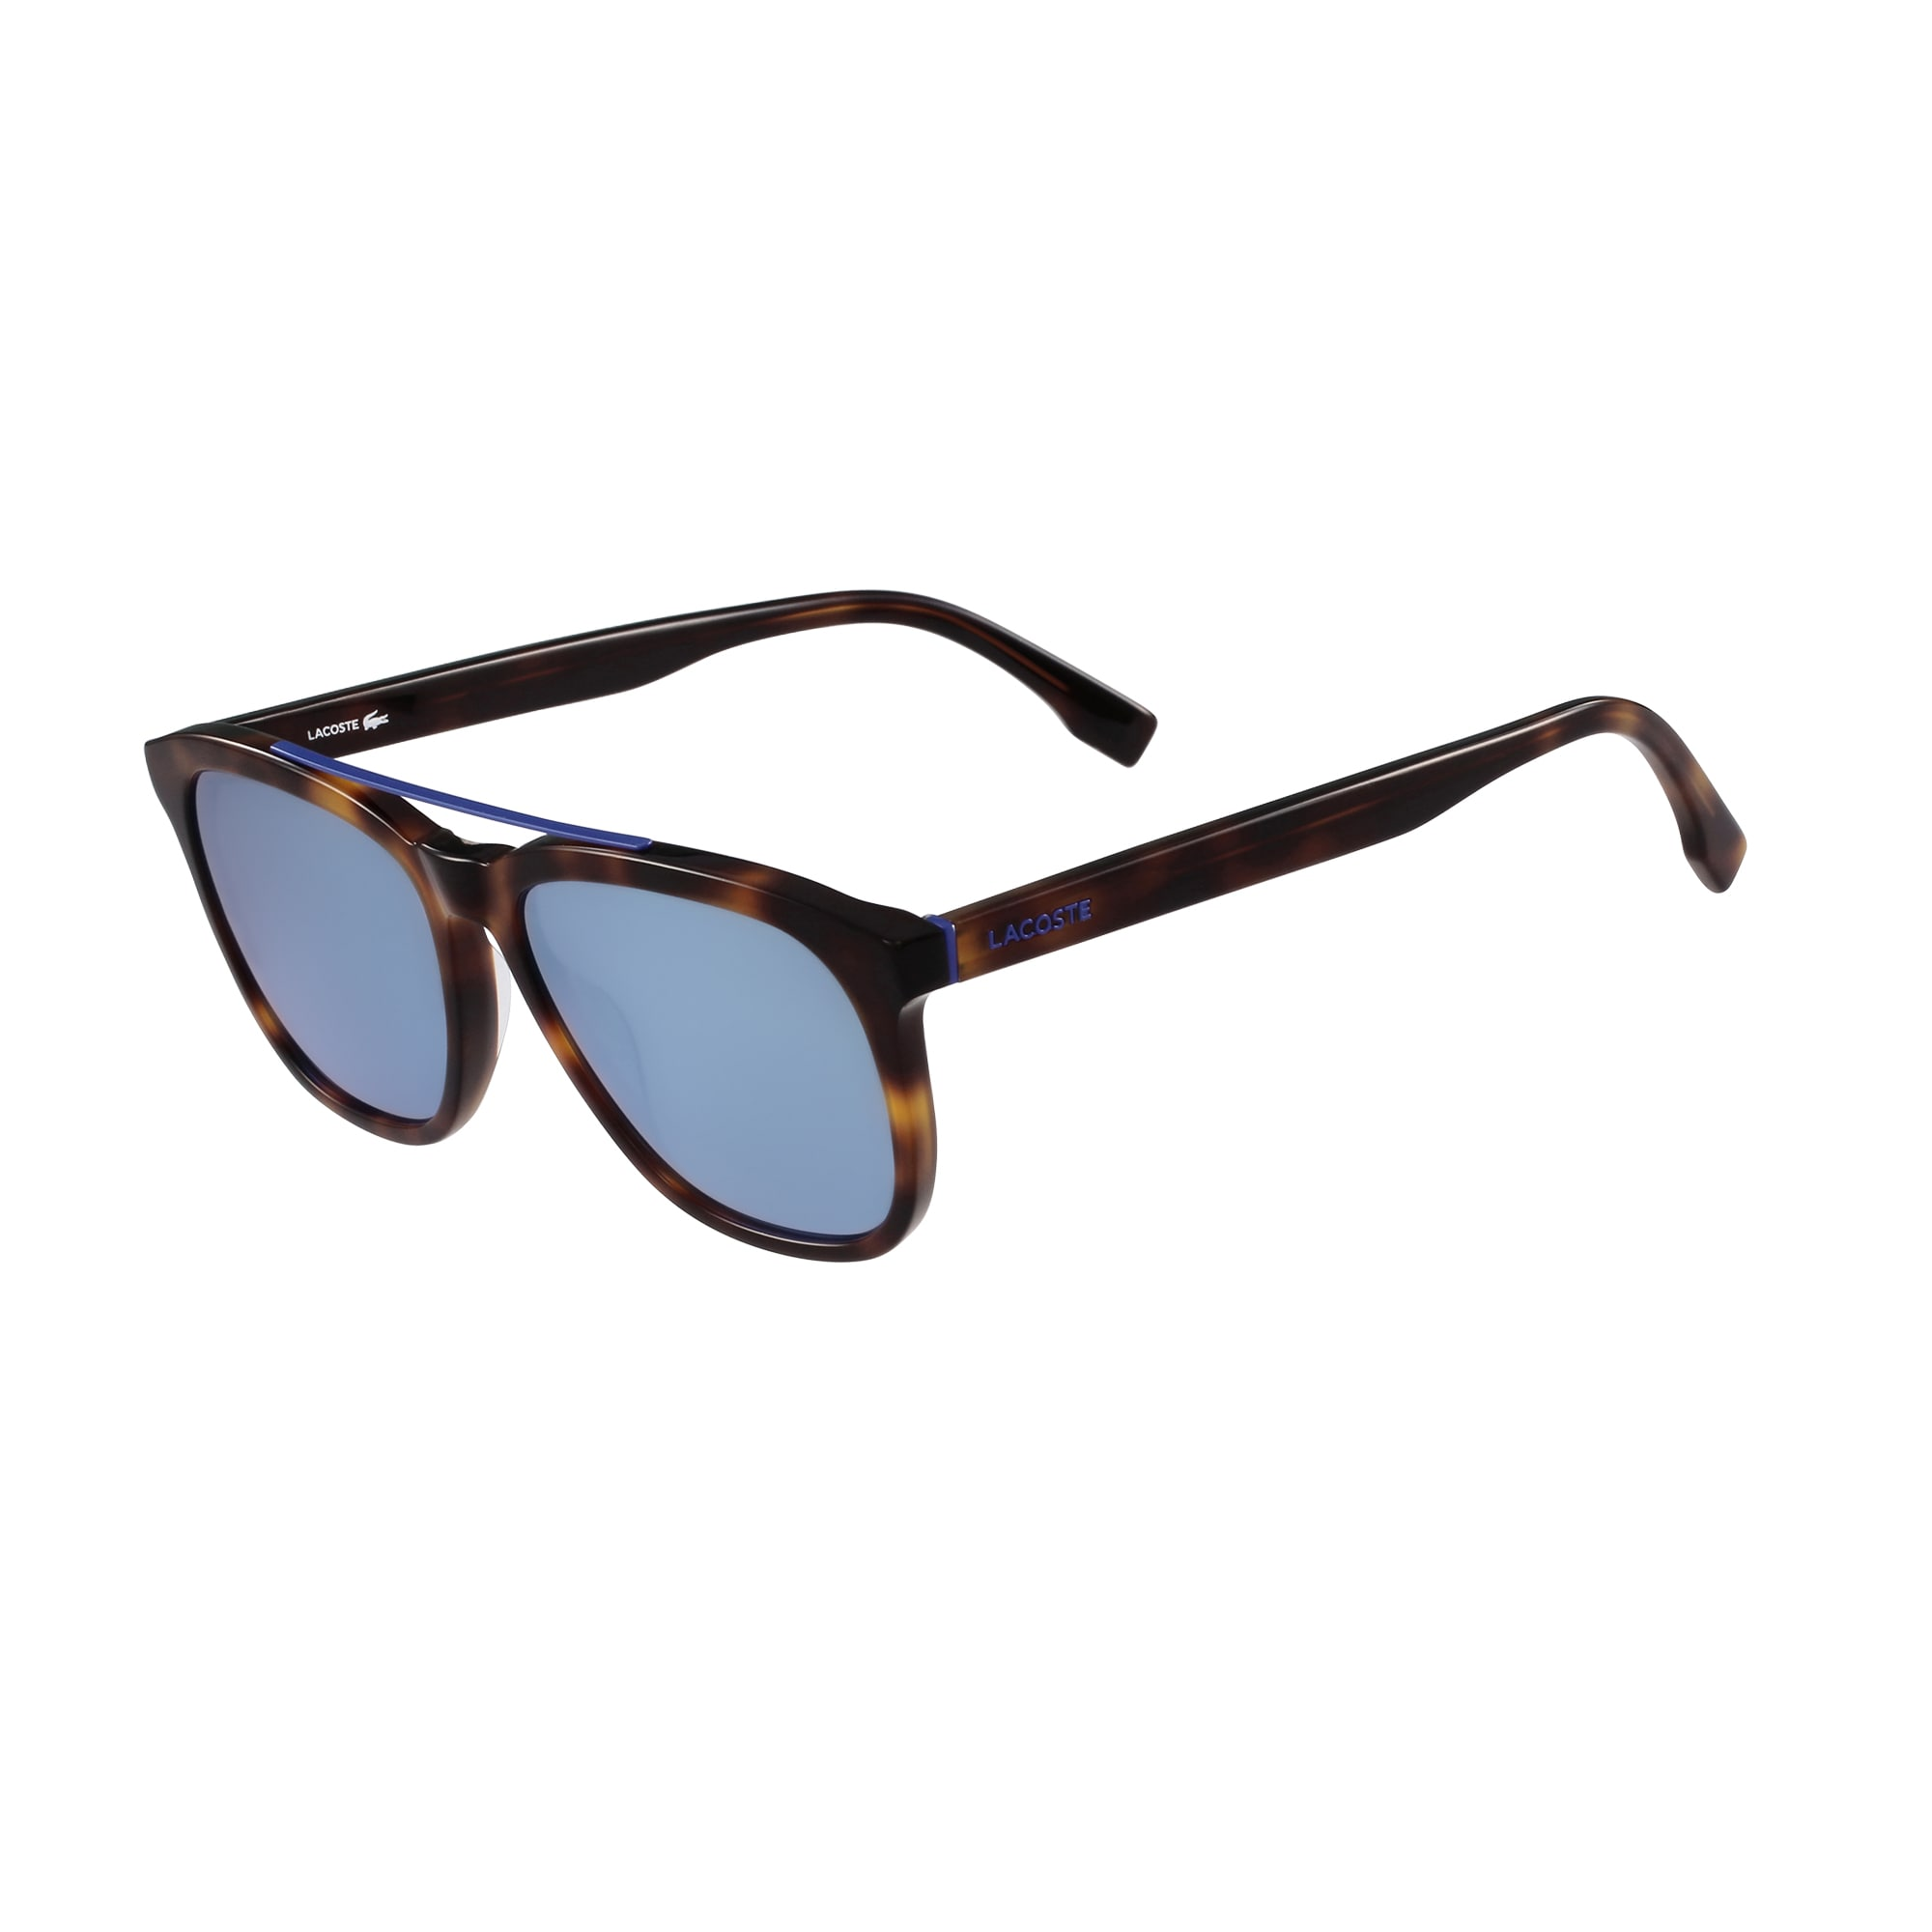 22dfd74c426 + 2 colors. Men Colorblock Sunglasses